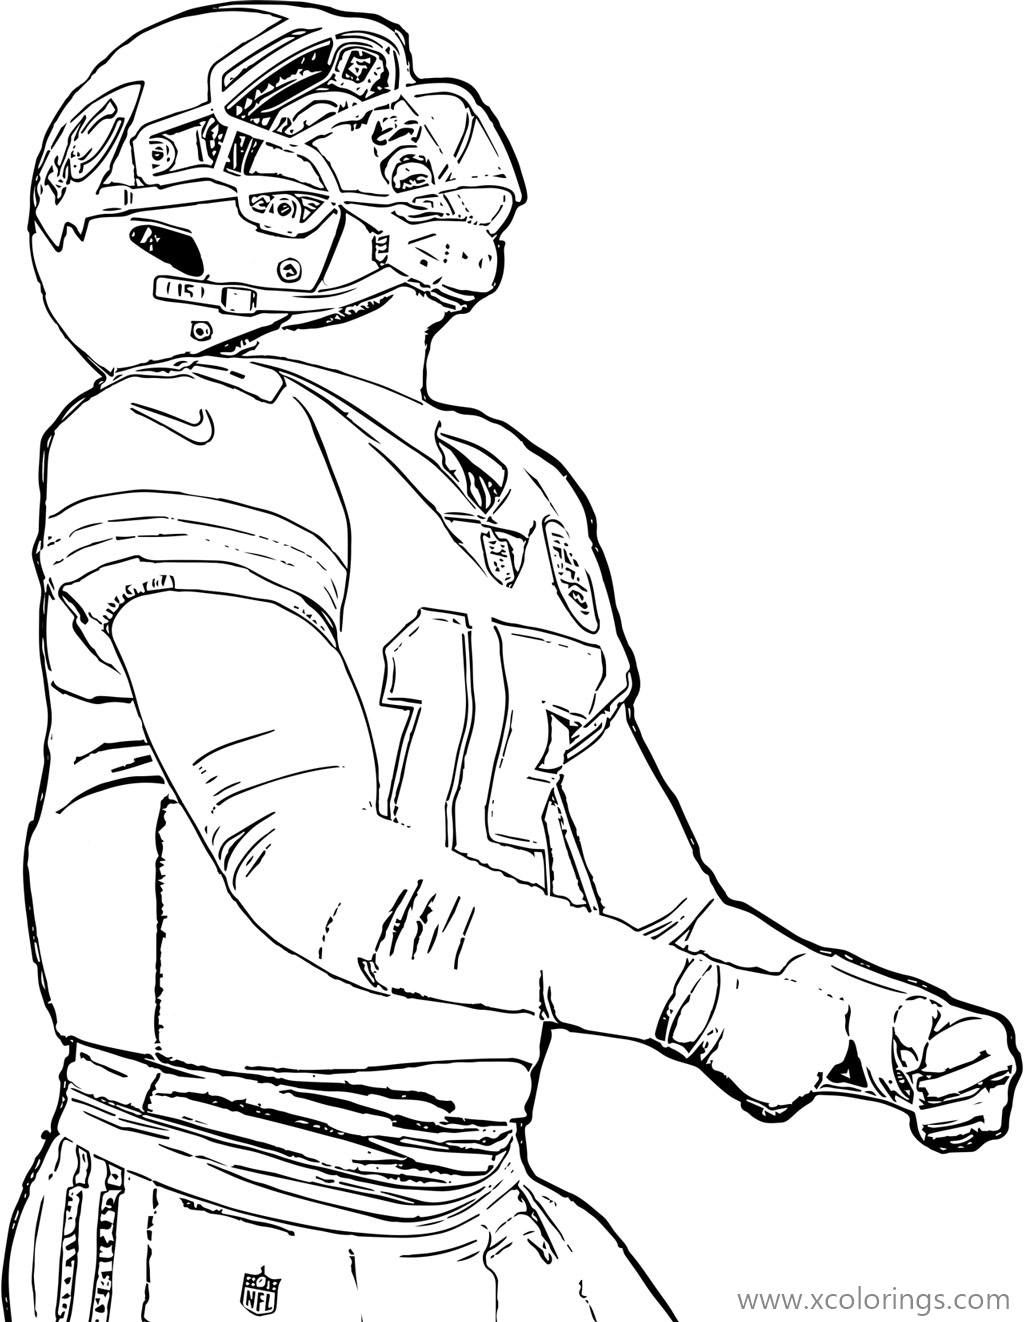 Patrick Mahomes Coloring Pages From Kansas Chiefs In 2020 Kansas Chiefs Coloring Pages Chief